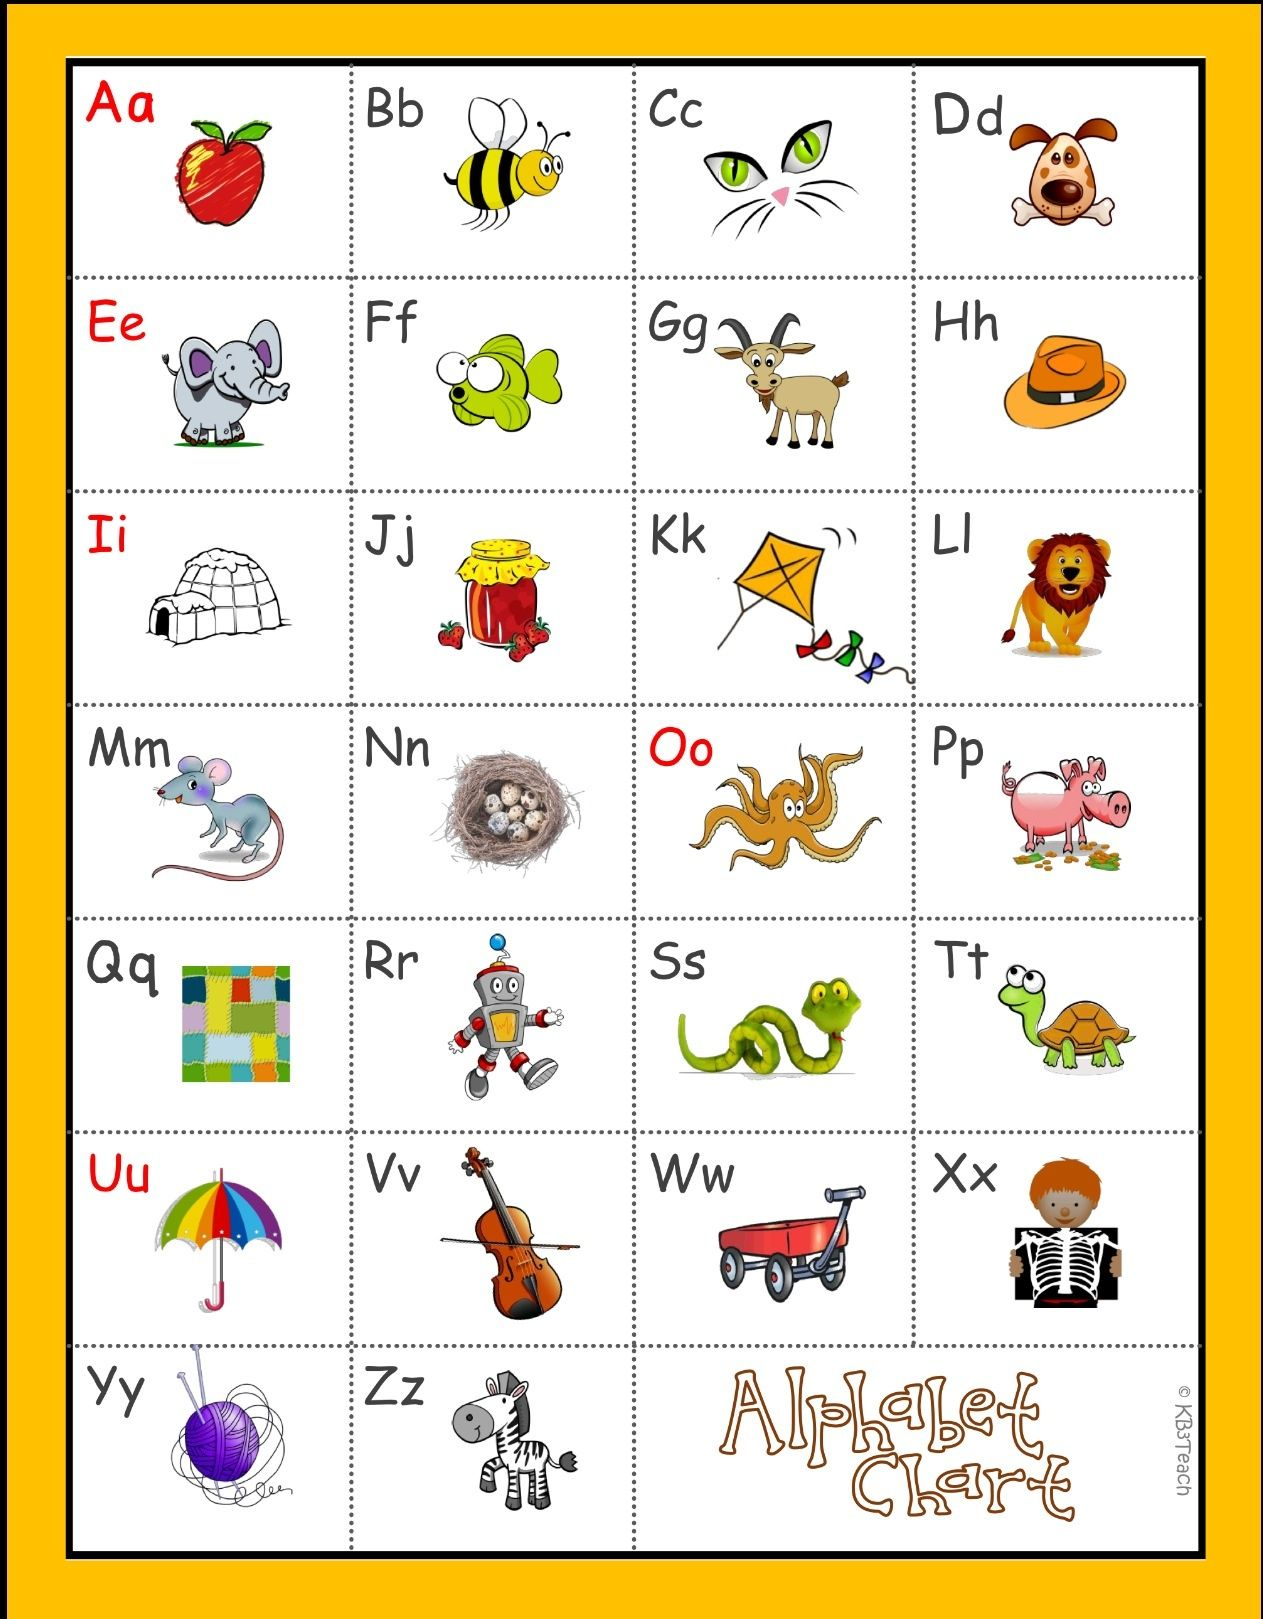 Alphabet Sounds Chart Alphabet sounds, Phonics, Teaching